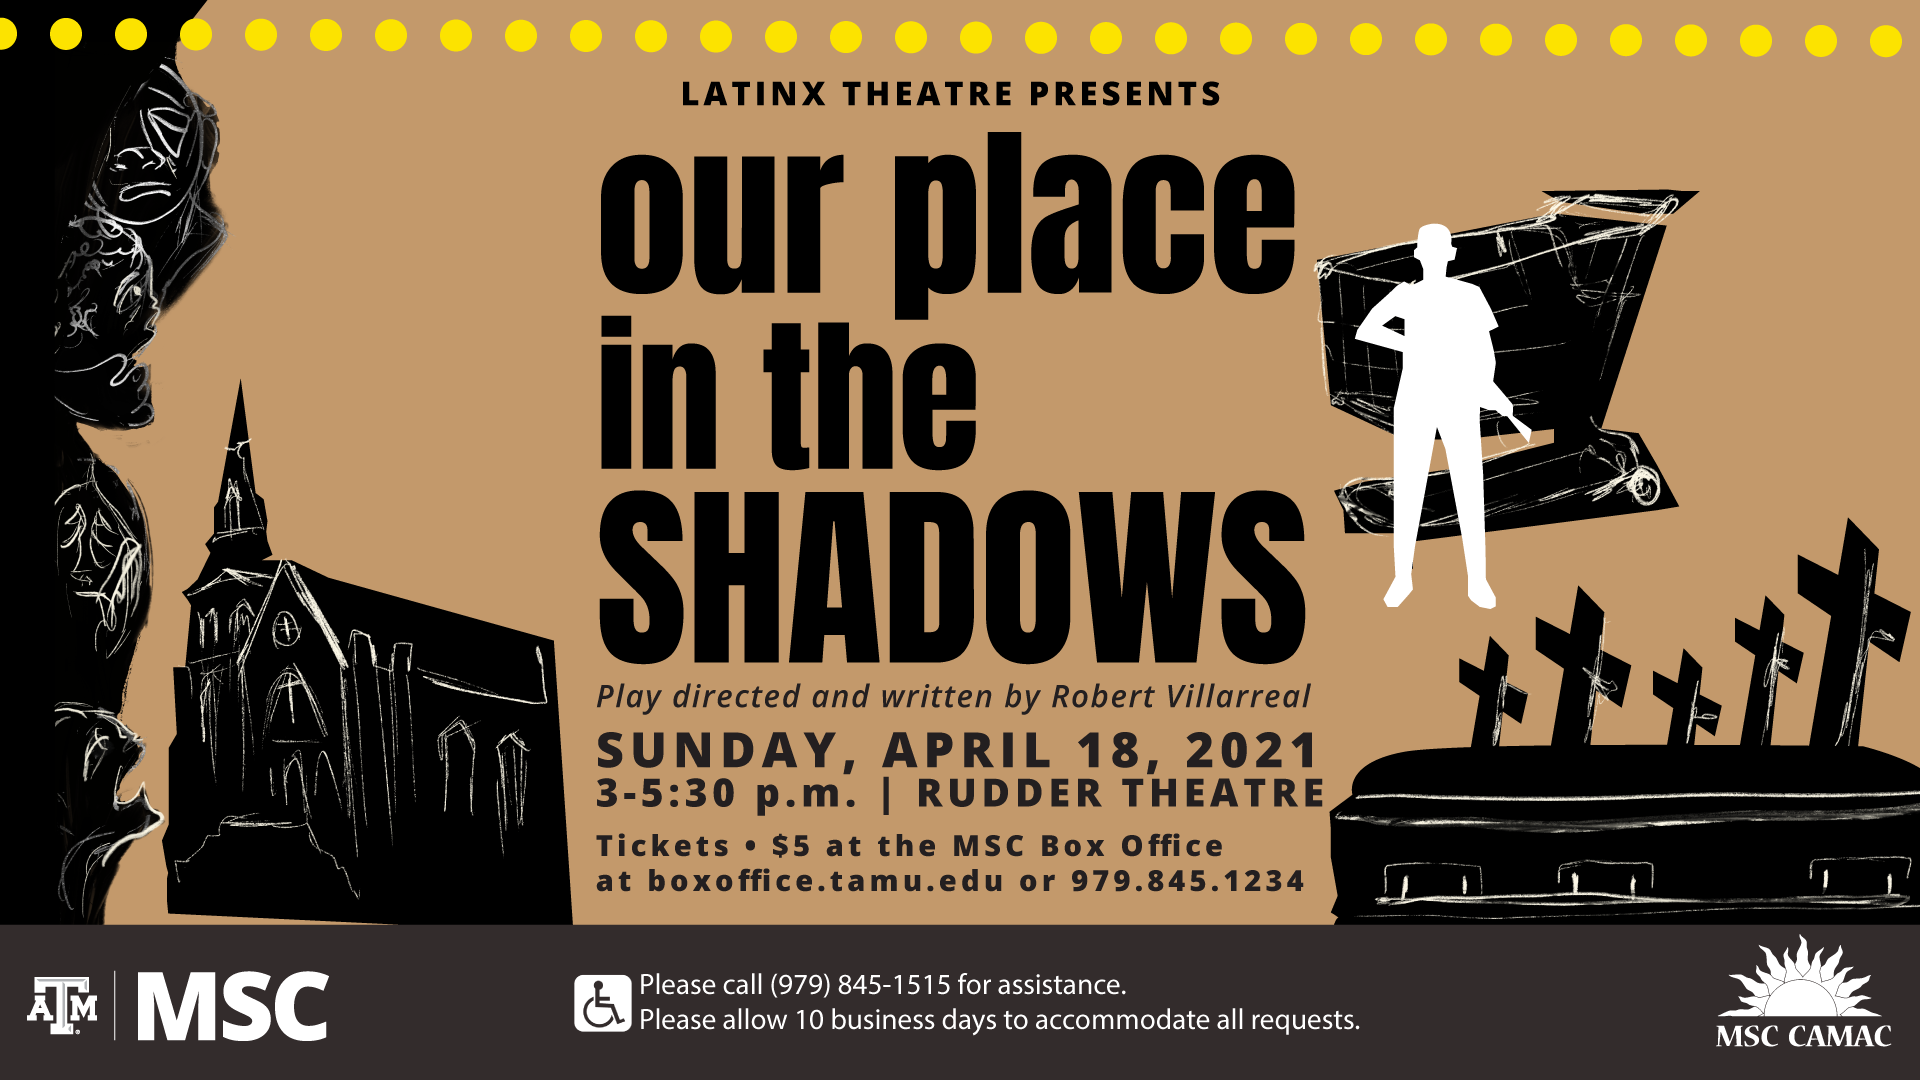 """Latinx Theatre Presents """"Our Place in the Shadows"""" Play directed and written by Robert Villarreal. Sunday, April 18, 2021, 3-5:30 p.m., Rudder Theatre, Tickets are $5 and available at MSC Box Office, Please call 979.845.1515 for assistance. Please allow 10 business days to accommodate all requests."""